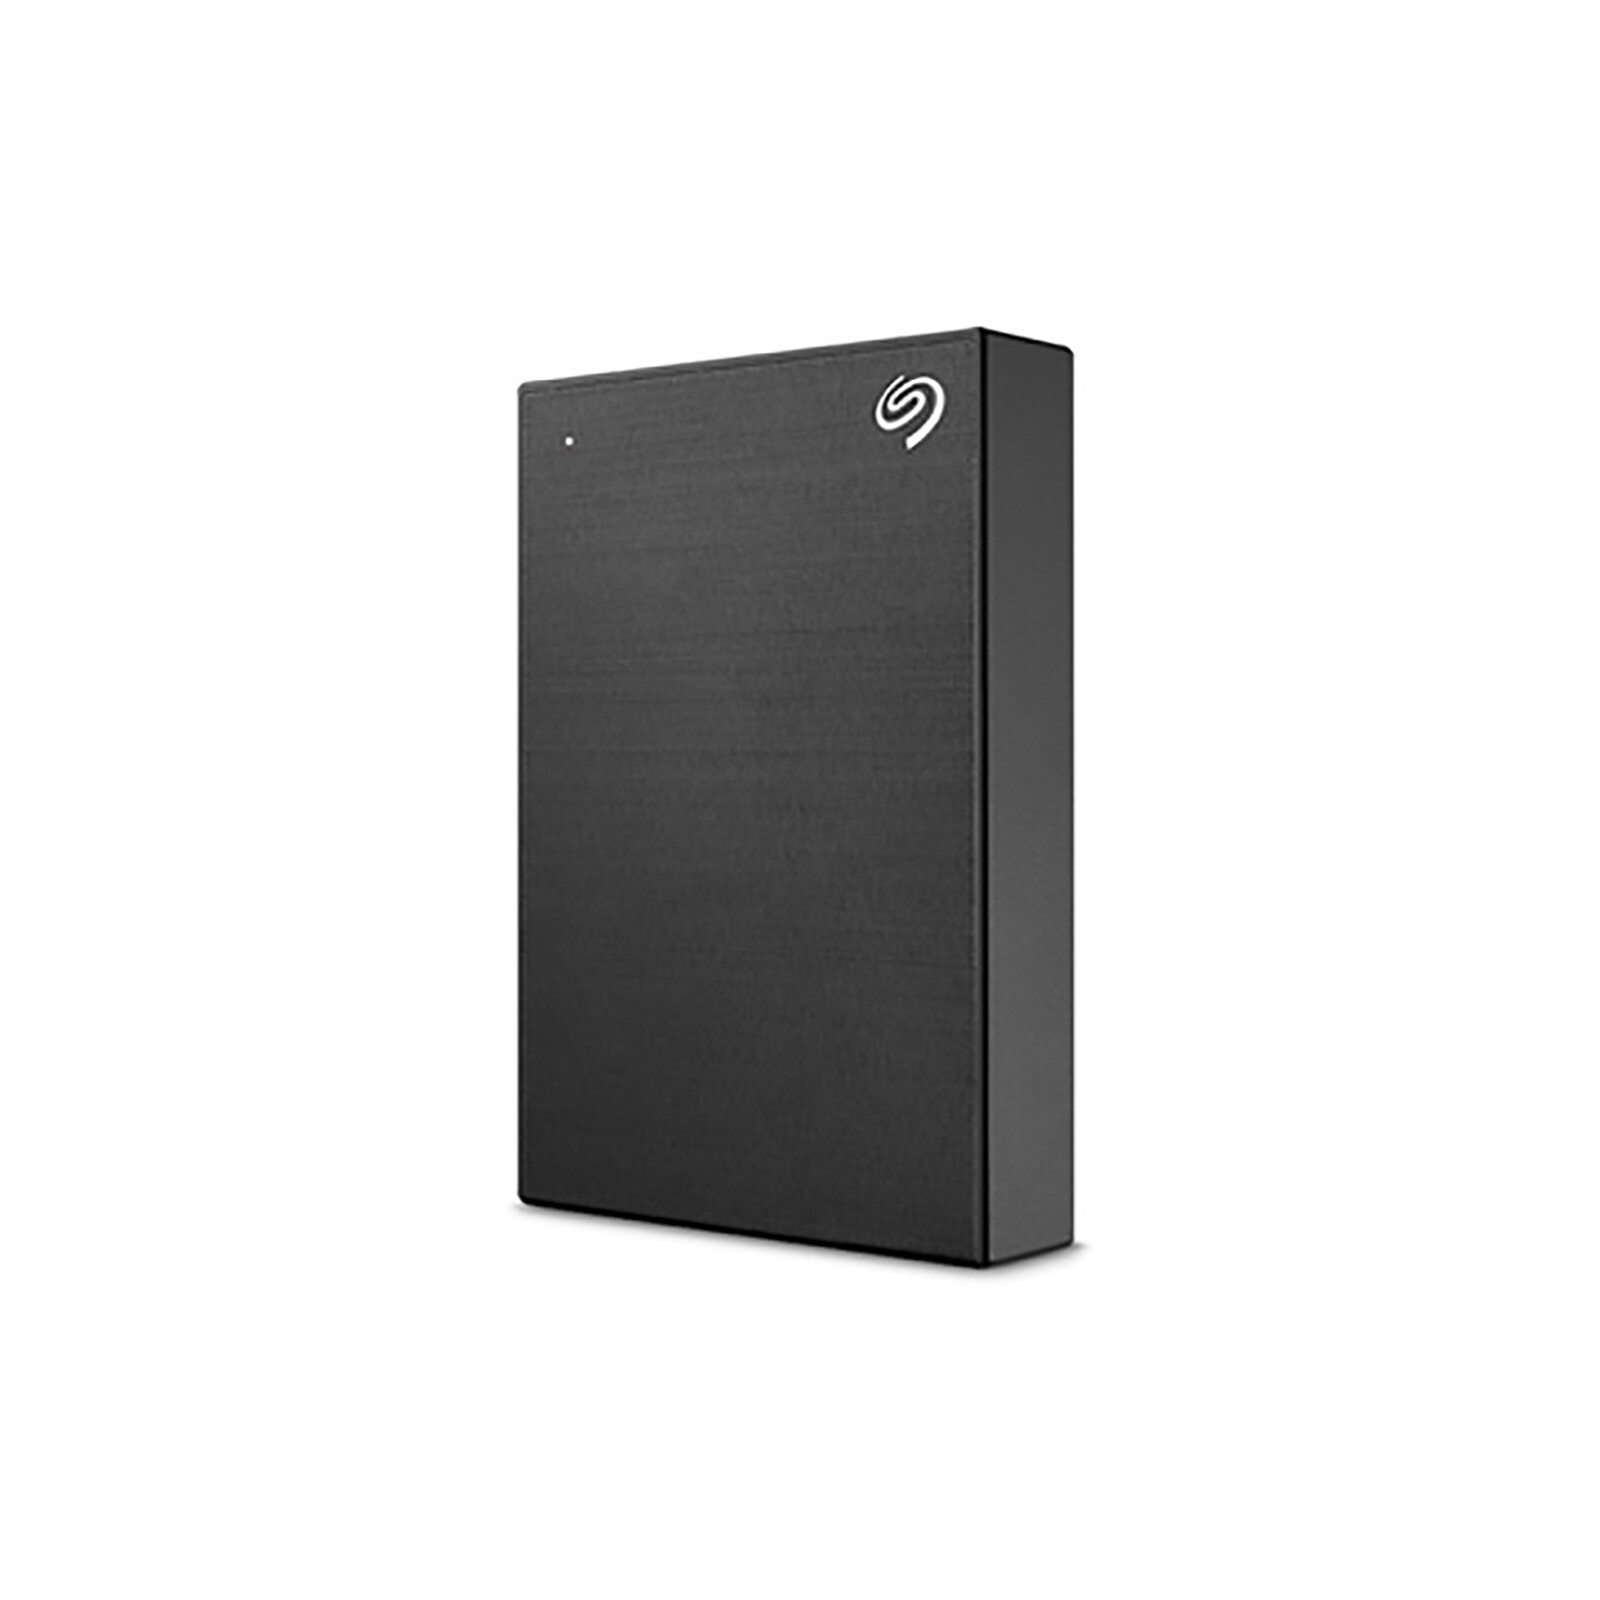 Seagate One Touch 5TB USB 3 black